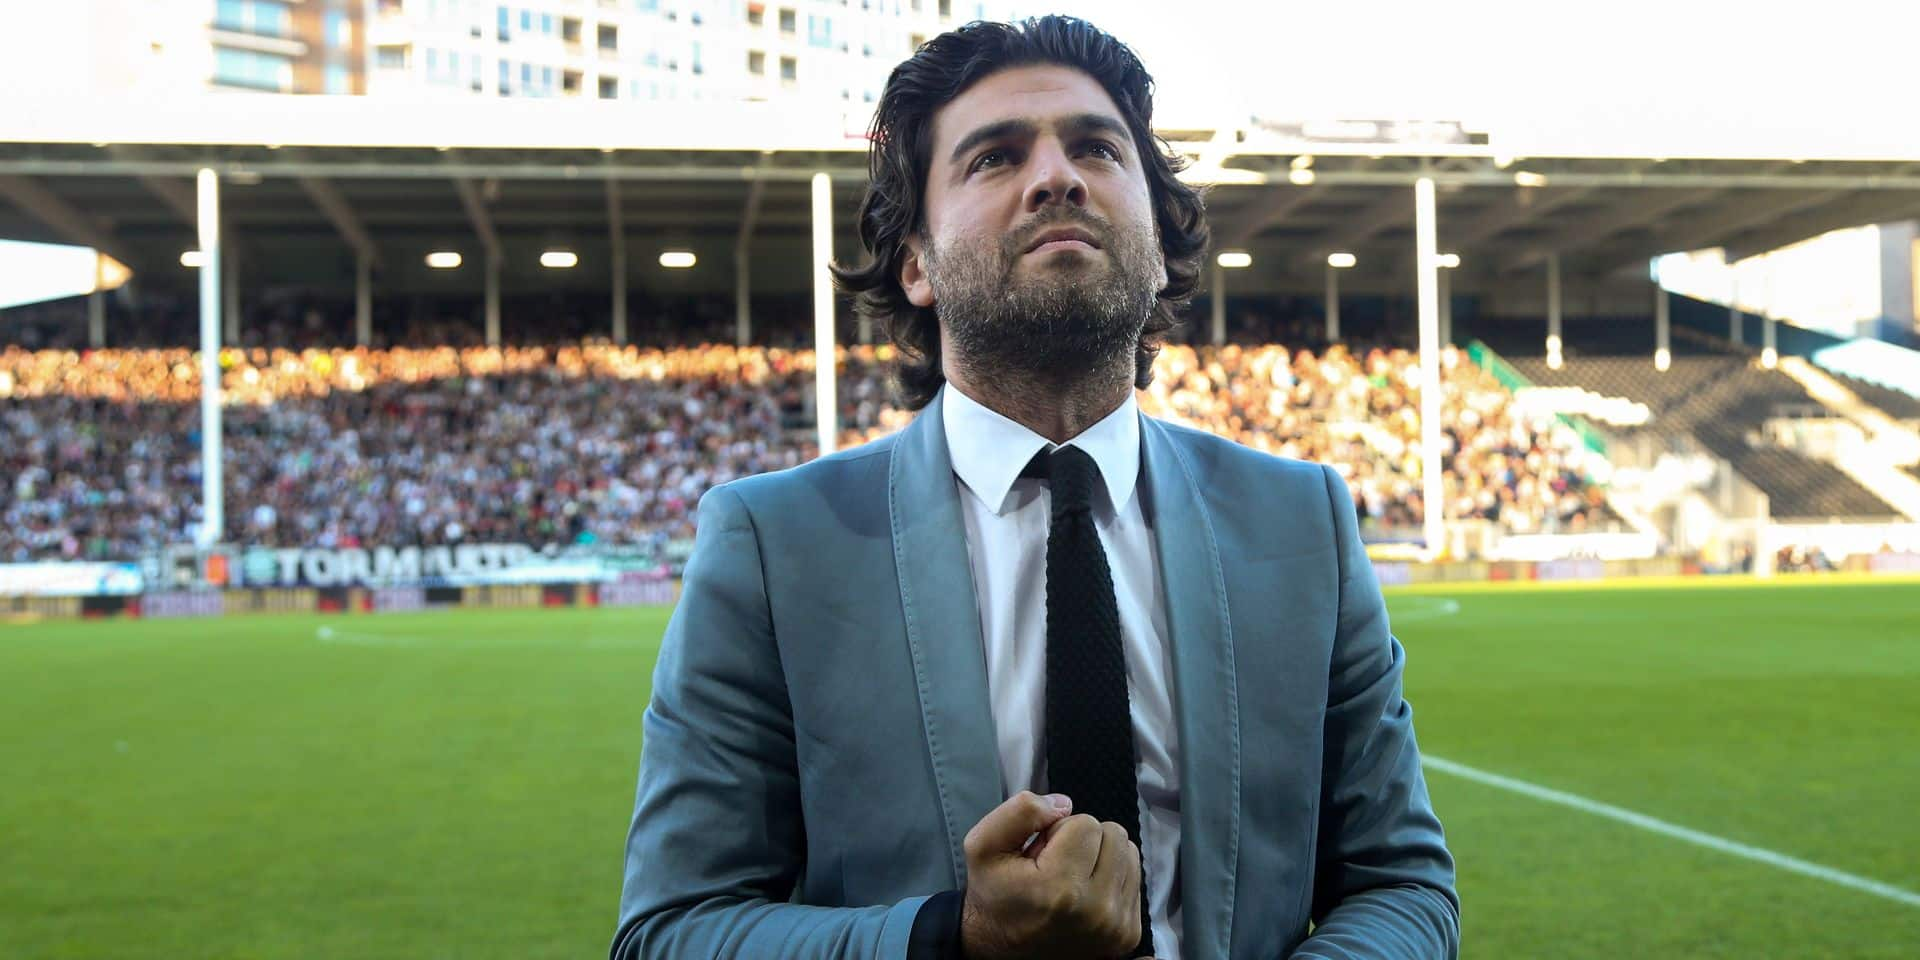 20150730 - CHARLEROI, BELGIUM: Charleroi's manager Mehdi Bayat pictured at a soccer game between Belgian first league team Sporting Charleroi and Ukranian club FC Zorya Luhansk, Thursday 30 July 2015 in Charleroi, the first leg of the third preliminary round of the Uefa Europa League competition. BELGA PHOTO VIRGINIE LEFOUR